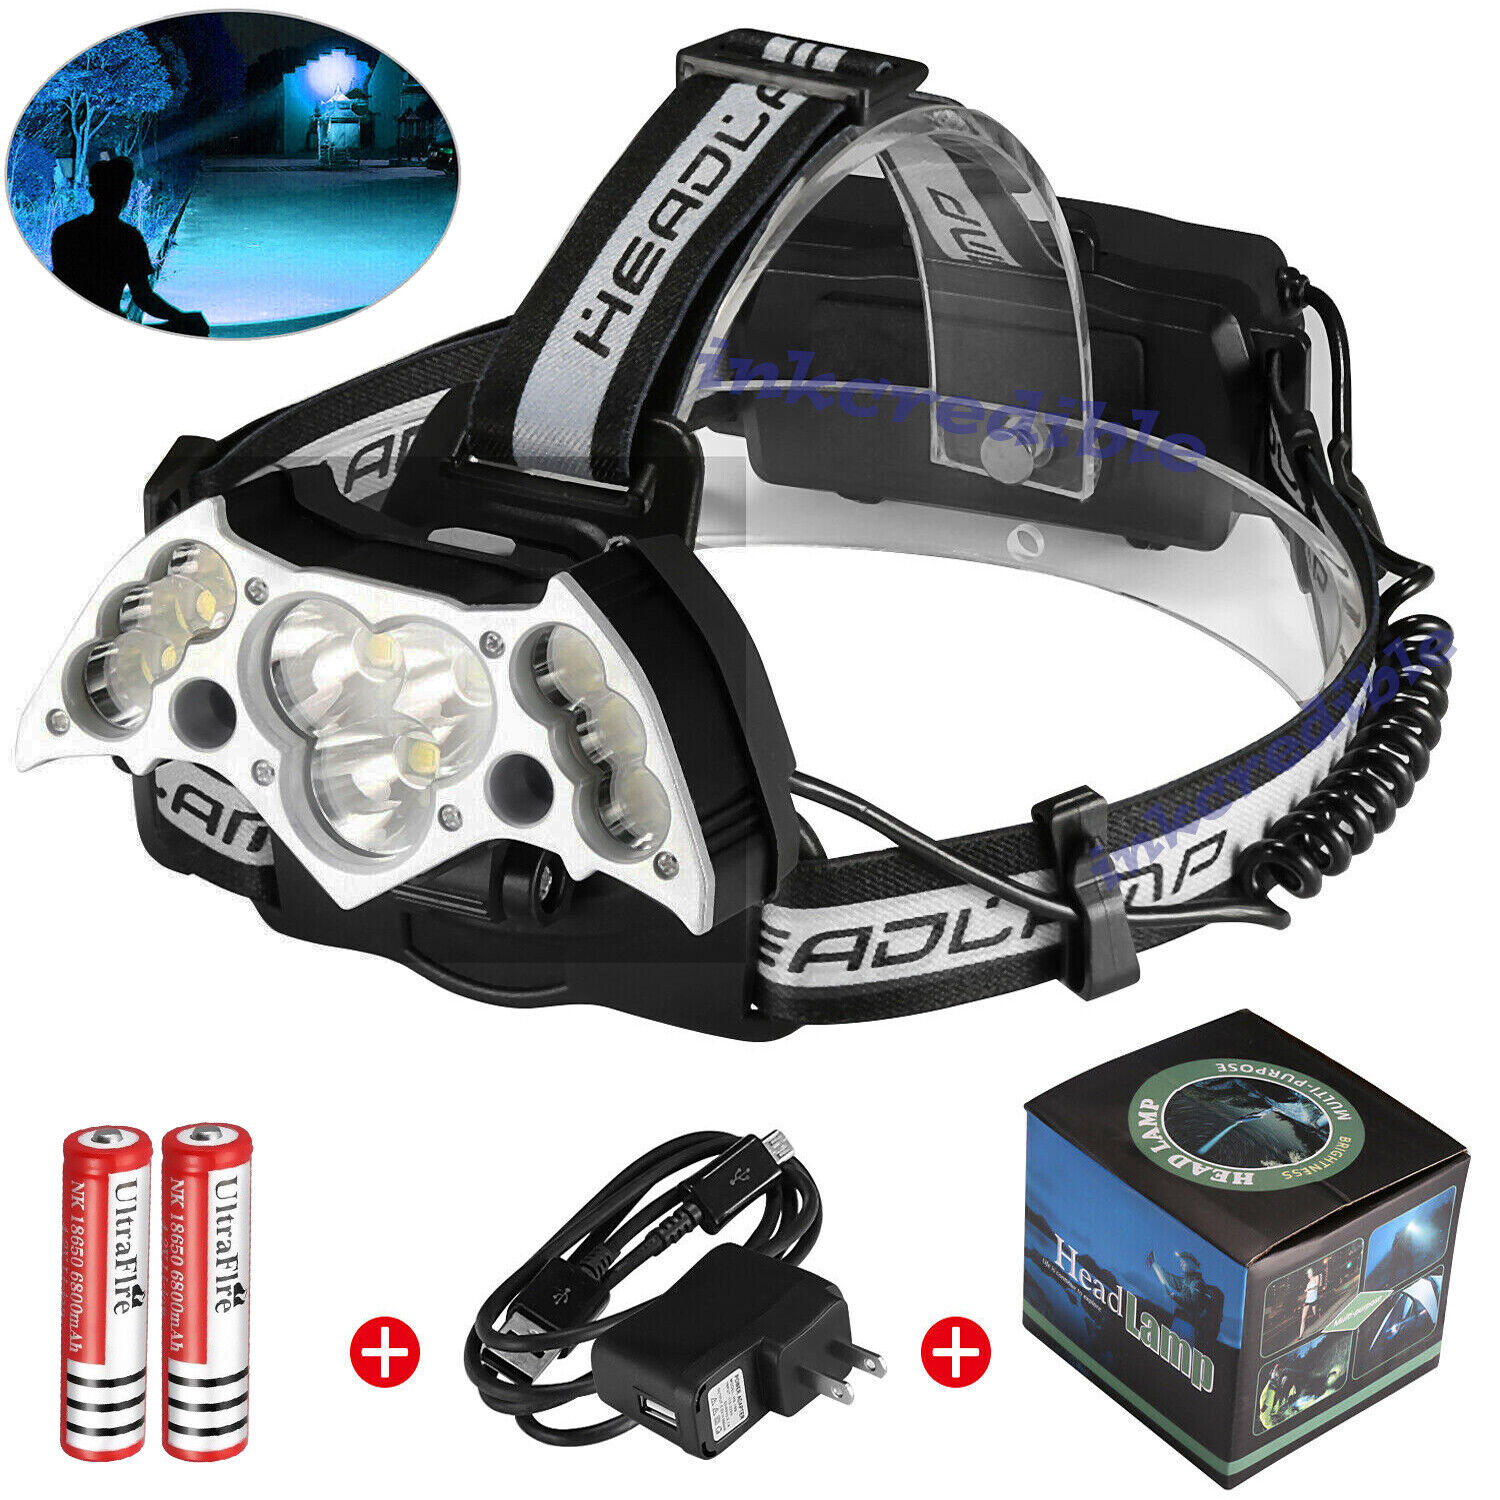 200000LM 11LED Headlamp USB Rechargeable 18650 Headlight Torch Lamp + Battery US Camping & Hiking